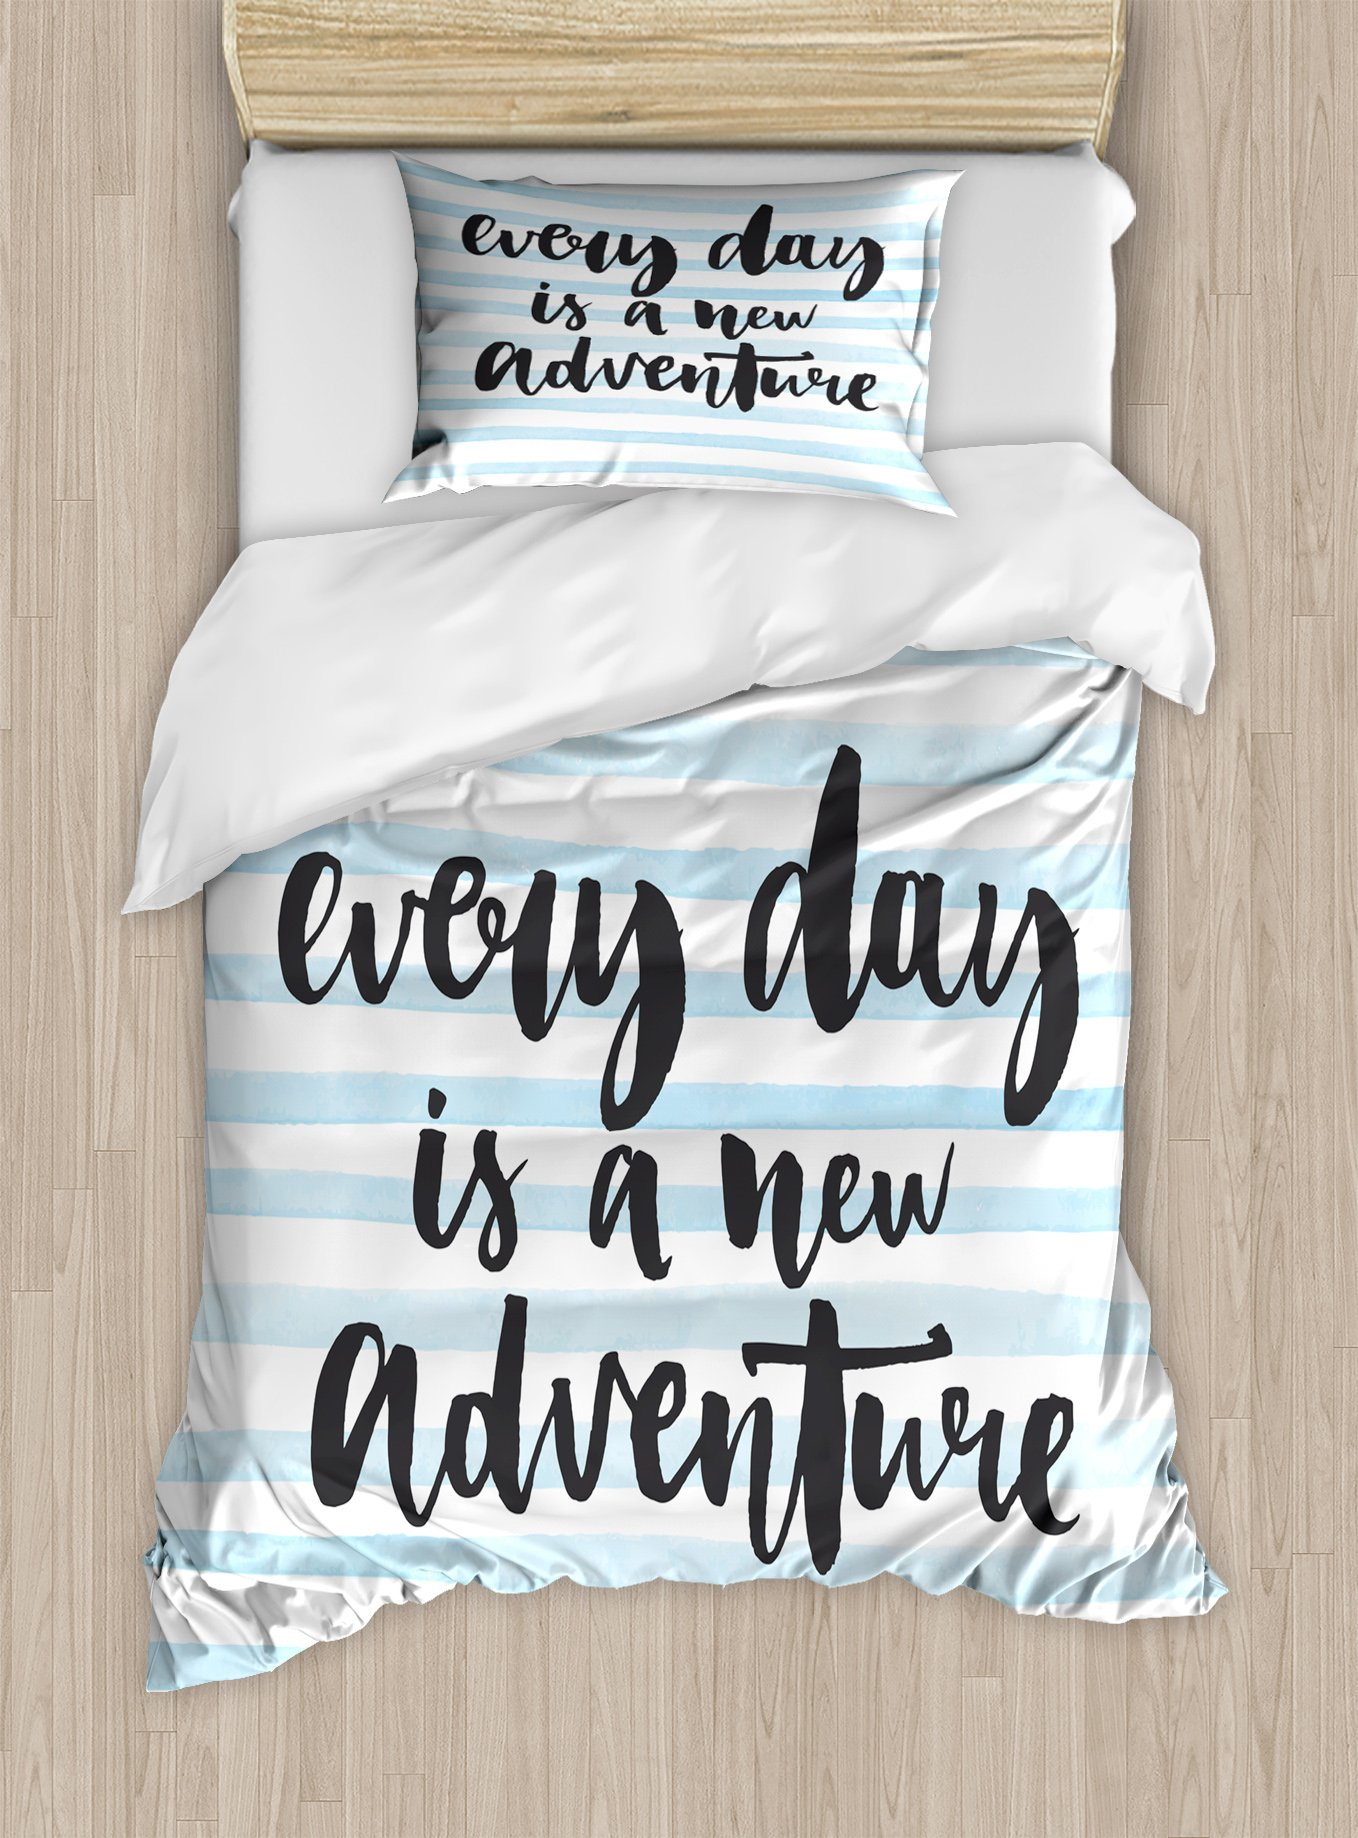 Lunarable Quote Twin Size Duvet Cover Set, Everyday is a New Adventure Calligraphy on Striped Background, Decorative 2 Piece Bedding Set with 1 Pillow Sham, Baby Blue White and Charcoal Grey